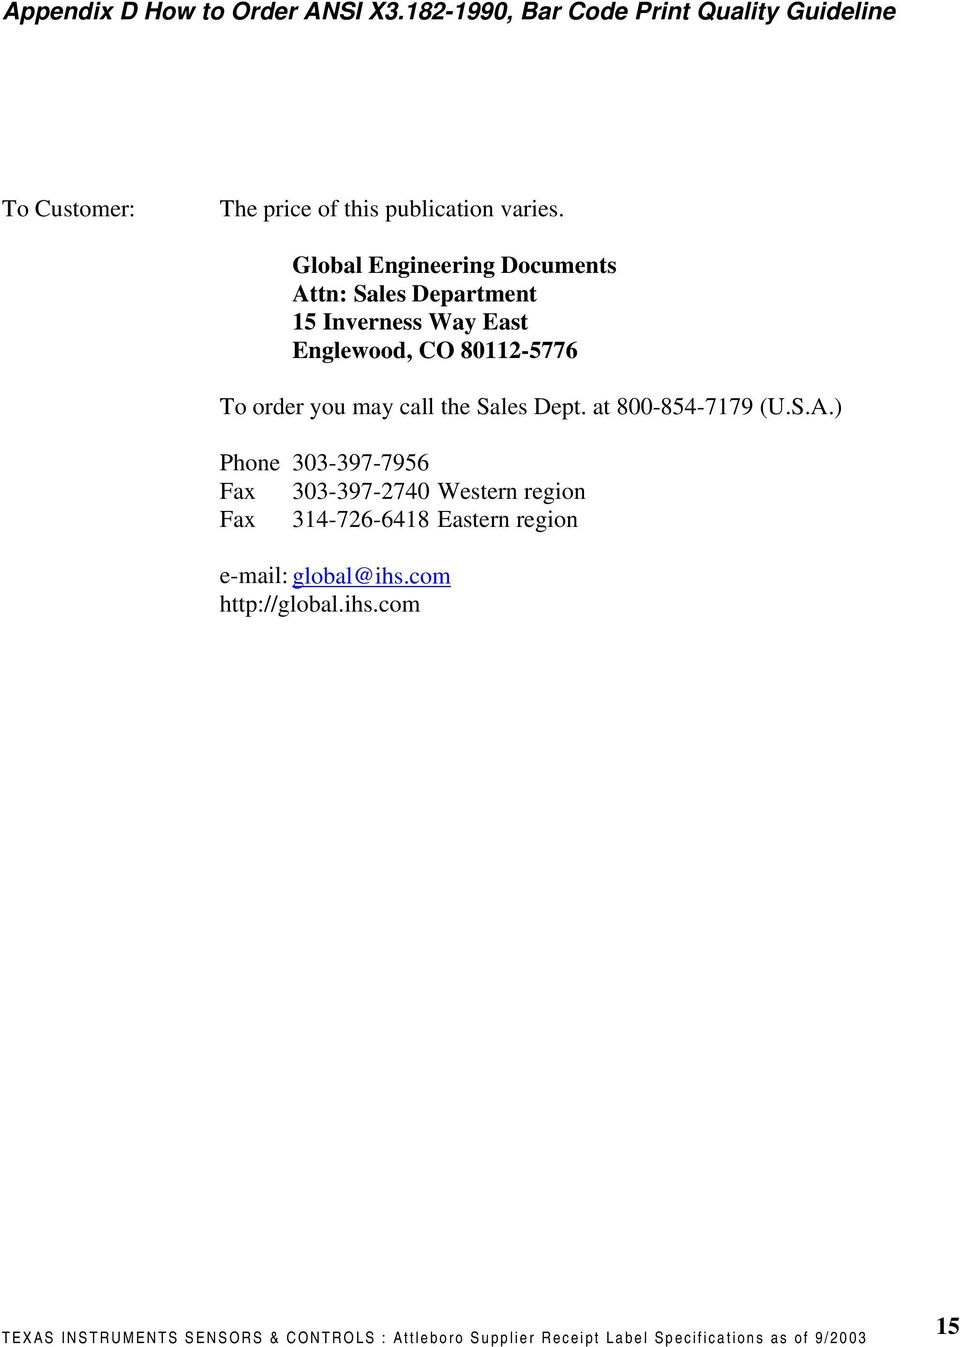 Global Engineering Documents Attn: Sales Department 15 Inverness Way East Englewood, CO 80112-5776 To